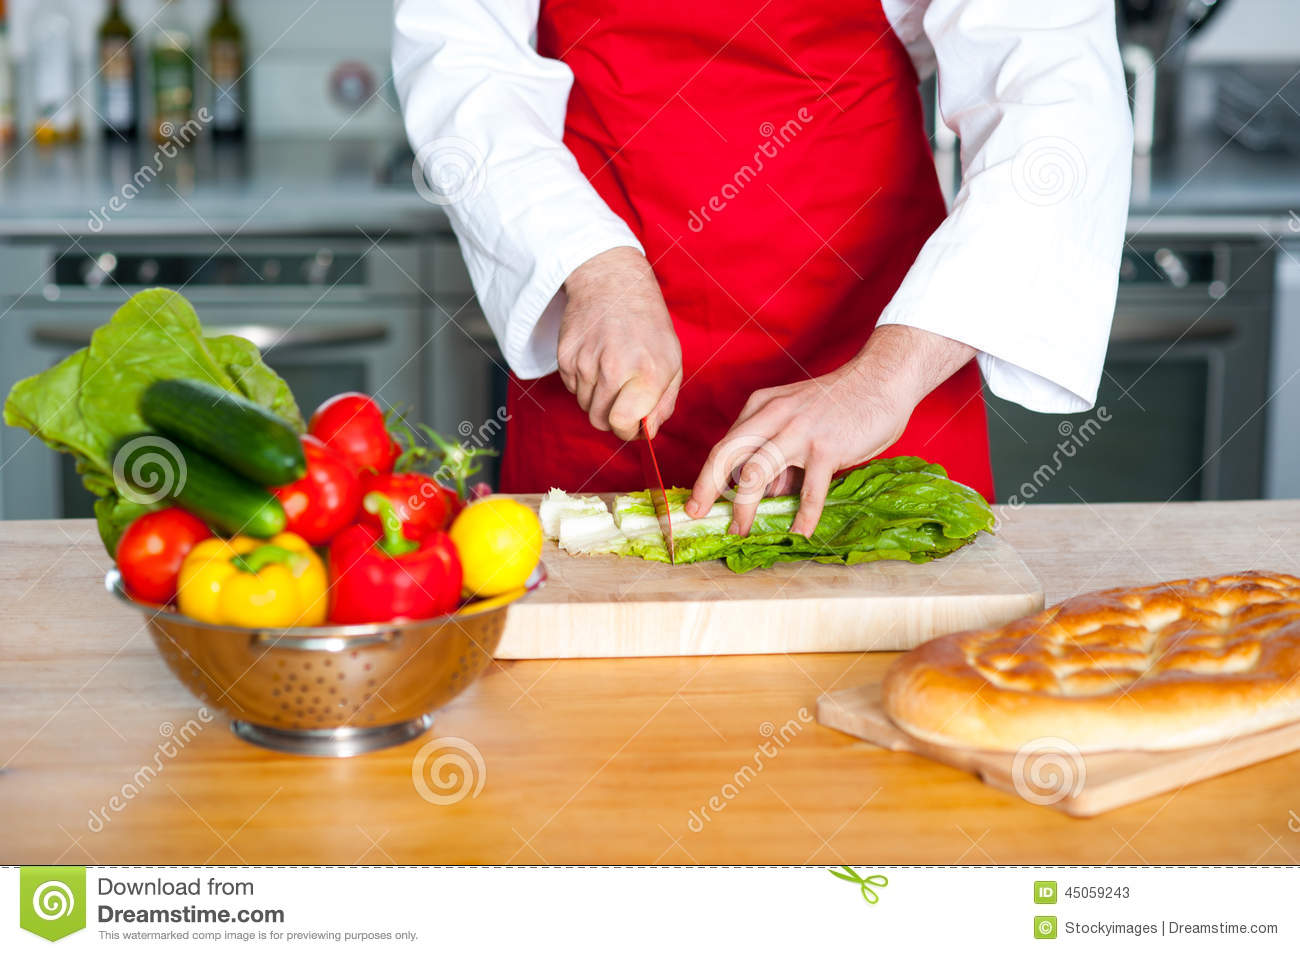 Chef Hand Chopping Vegetables Stock Image - Image: 45059243